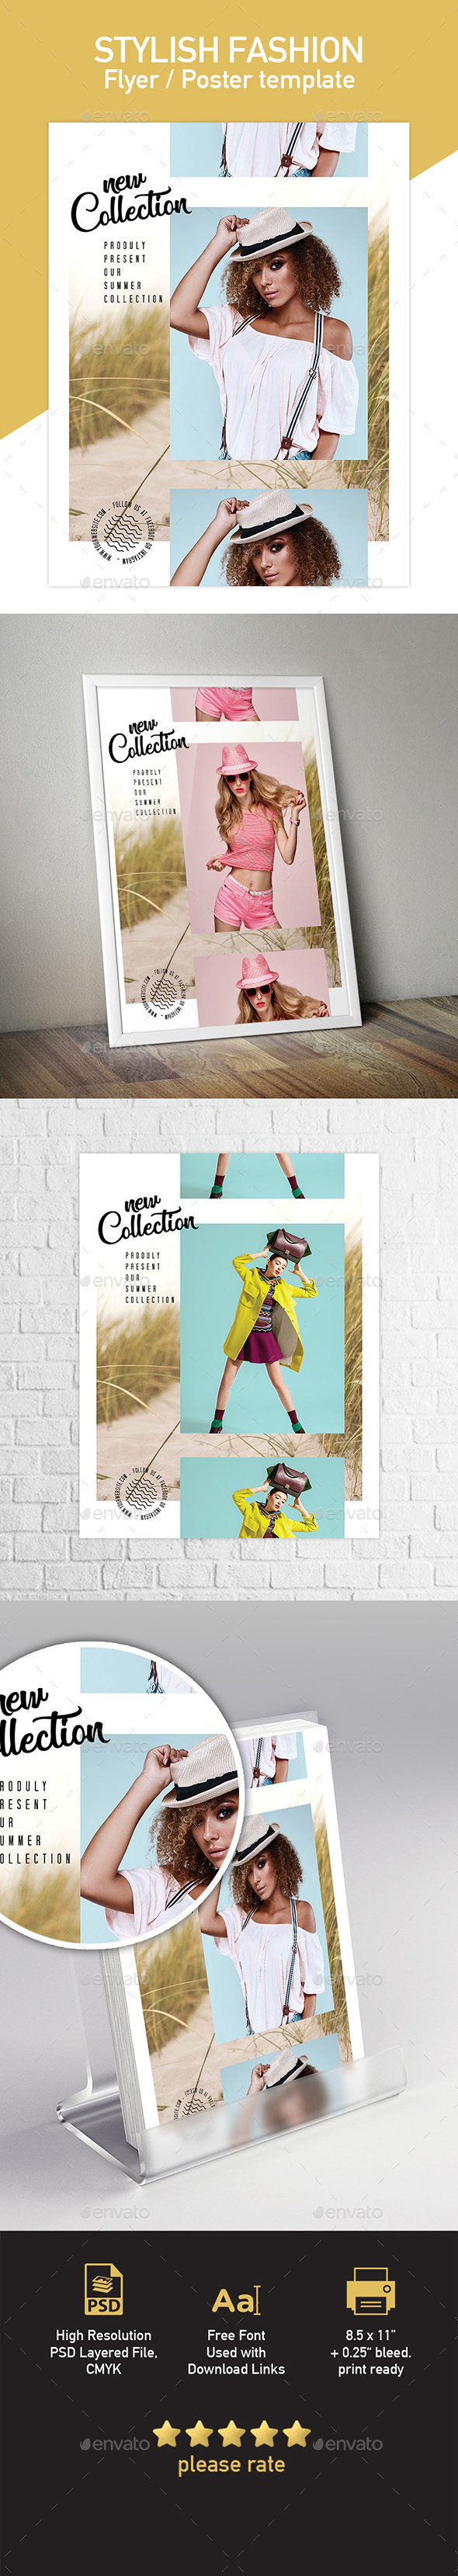 Stylish Fashion Poster Flyer Template - Commerce Flyers